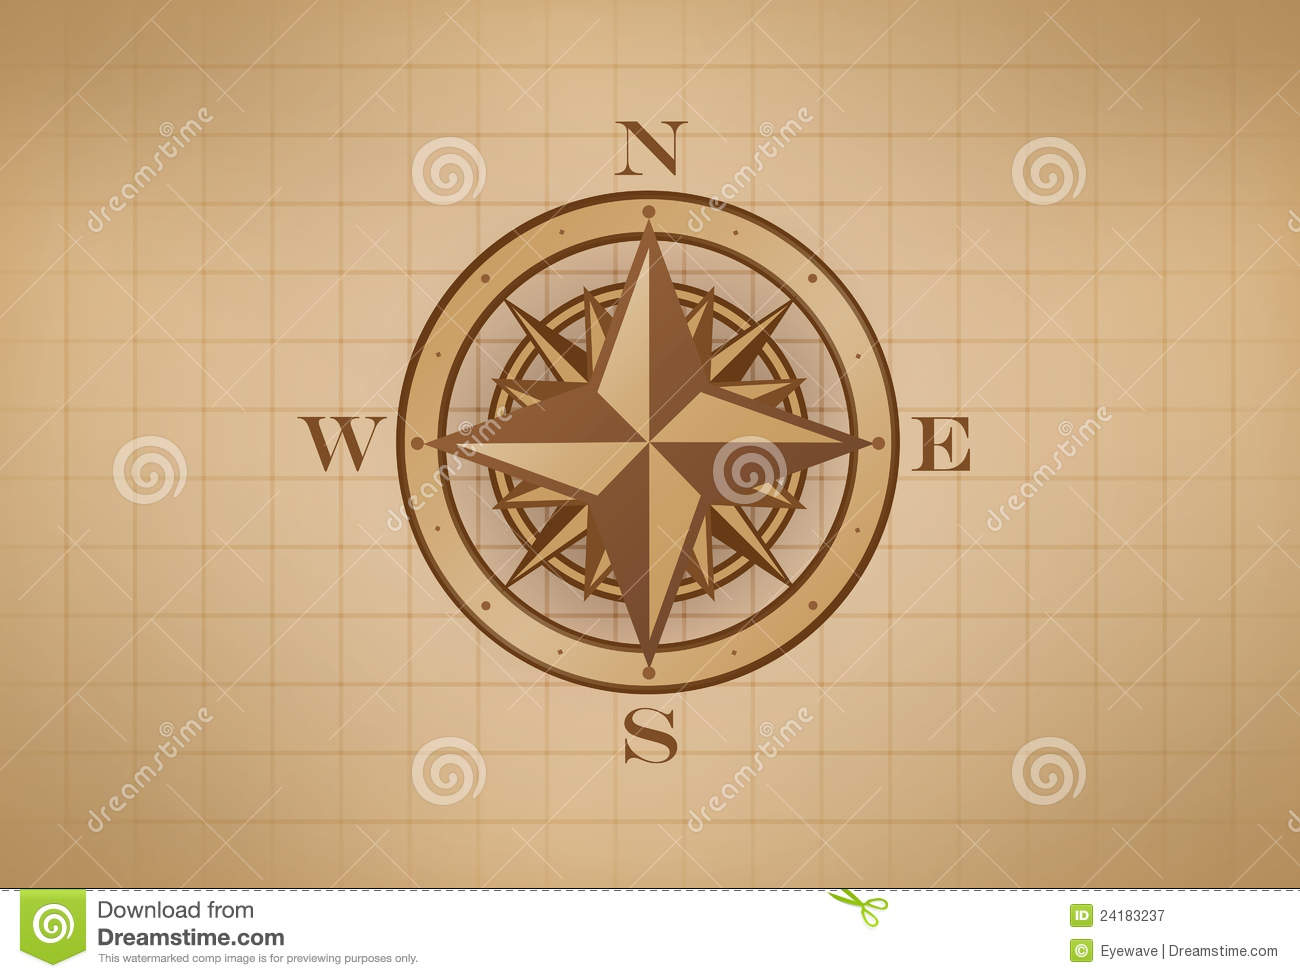 Vintage Compass Rose Royalty Free Stock Photography - Image: 24183237